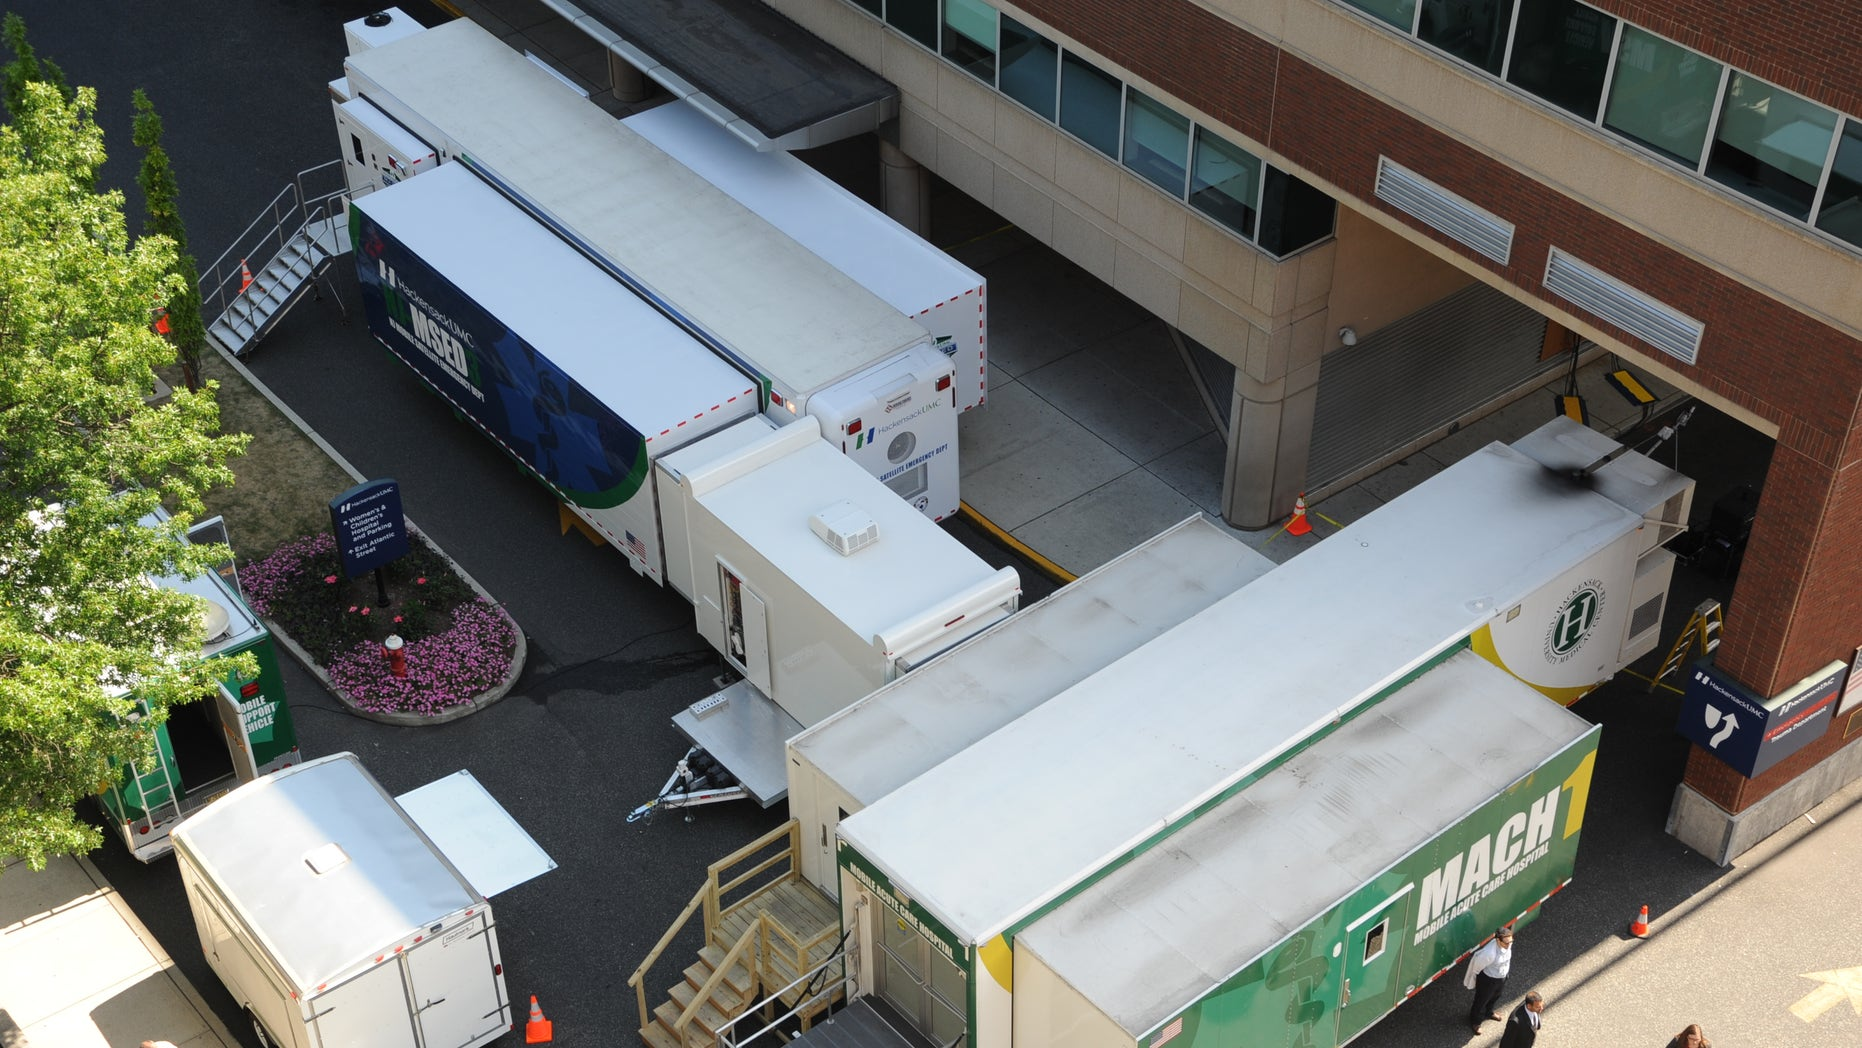 An aerial view of the New Jersey Mobile Satellite Department. Courtesy of Hackensack University Medical Center